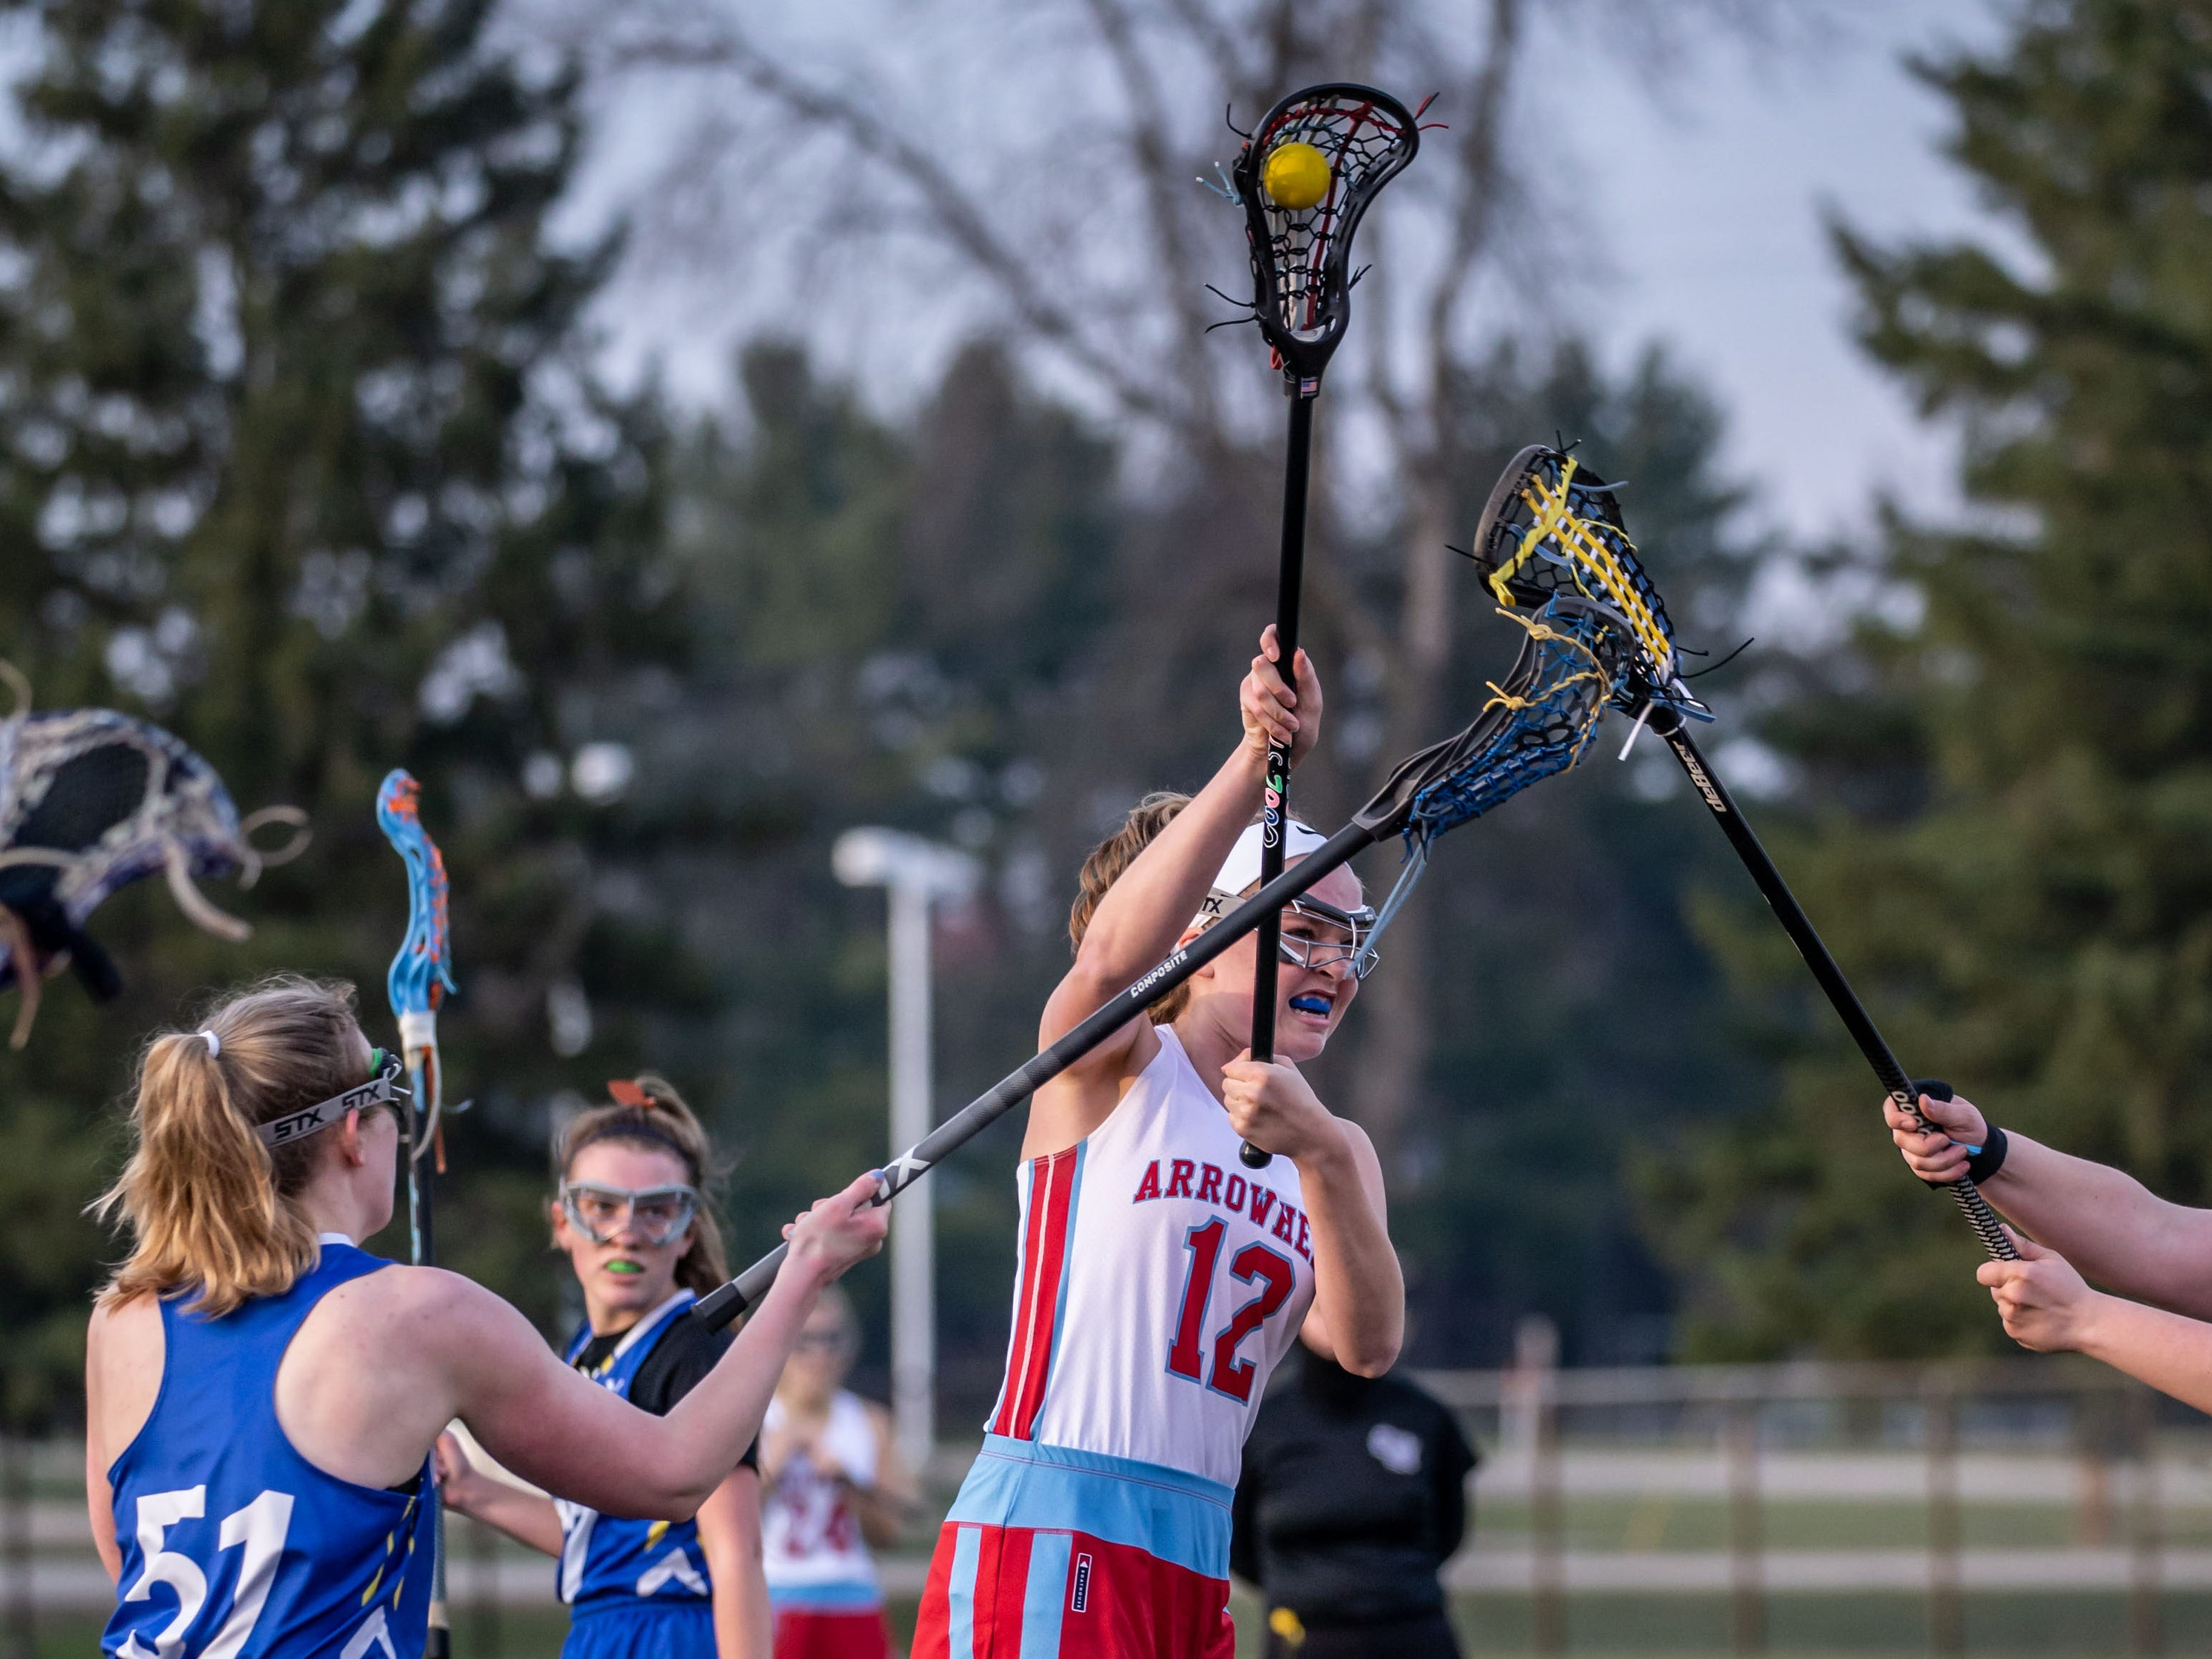 Arrowhead's Coryn Tormala (12) takes a shot on goal during the game at home against Mukwonago on Tuesday, April 16, 2019.